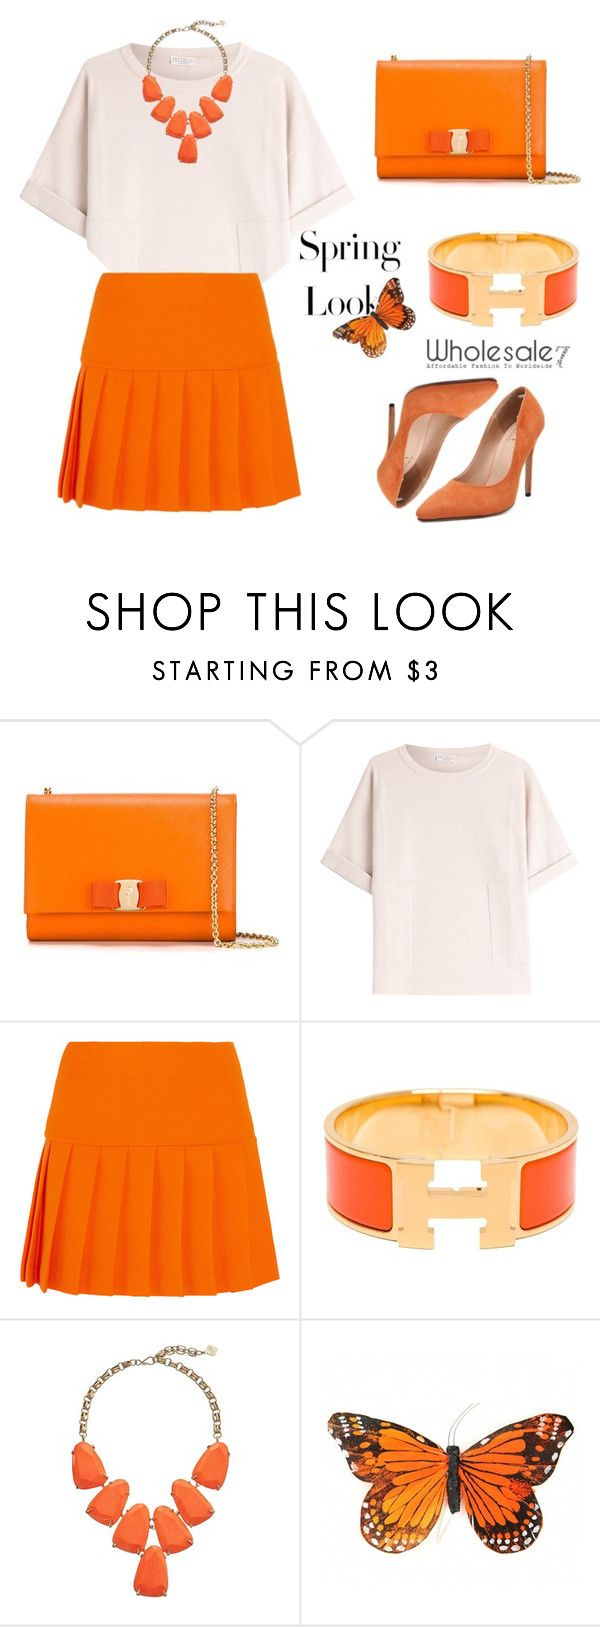 """Wholesale7/ Orange Pumps"" by lee77 ❤ liked on Polyvore featuring Salvatore Ferragamo, Brunello Cucinelli, Miu Miu, Hermès, Kendra Scott, H&M, women's clothing, women, female and woman"